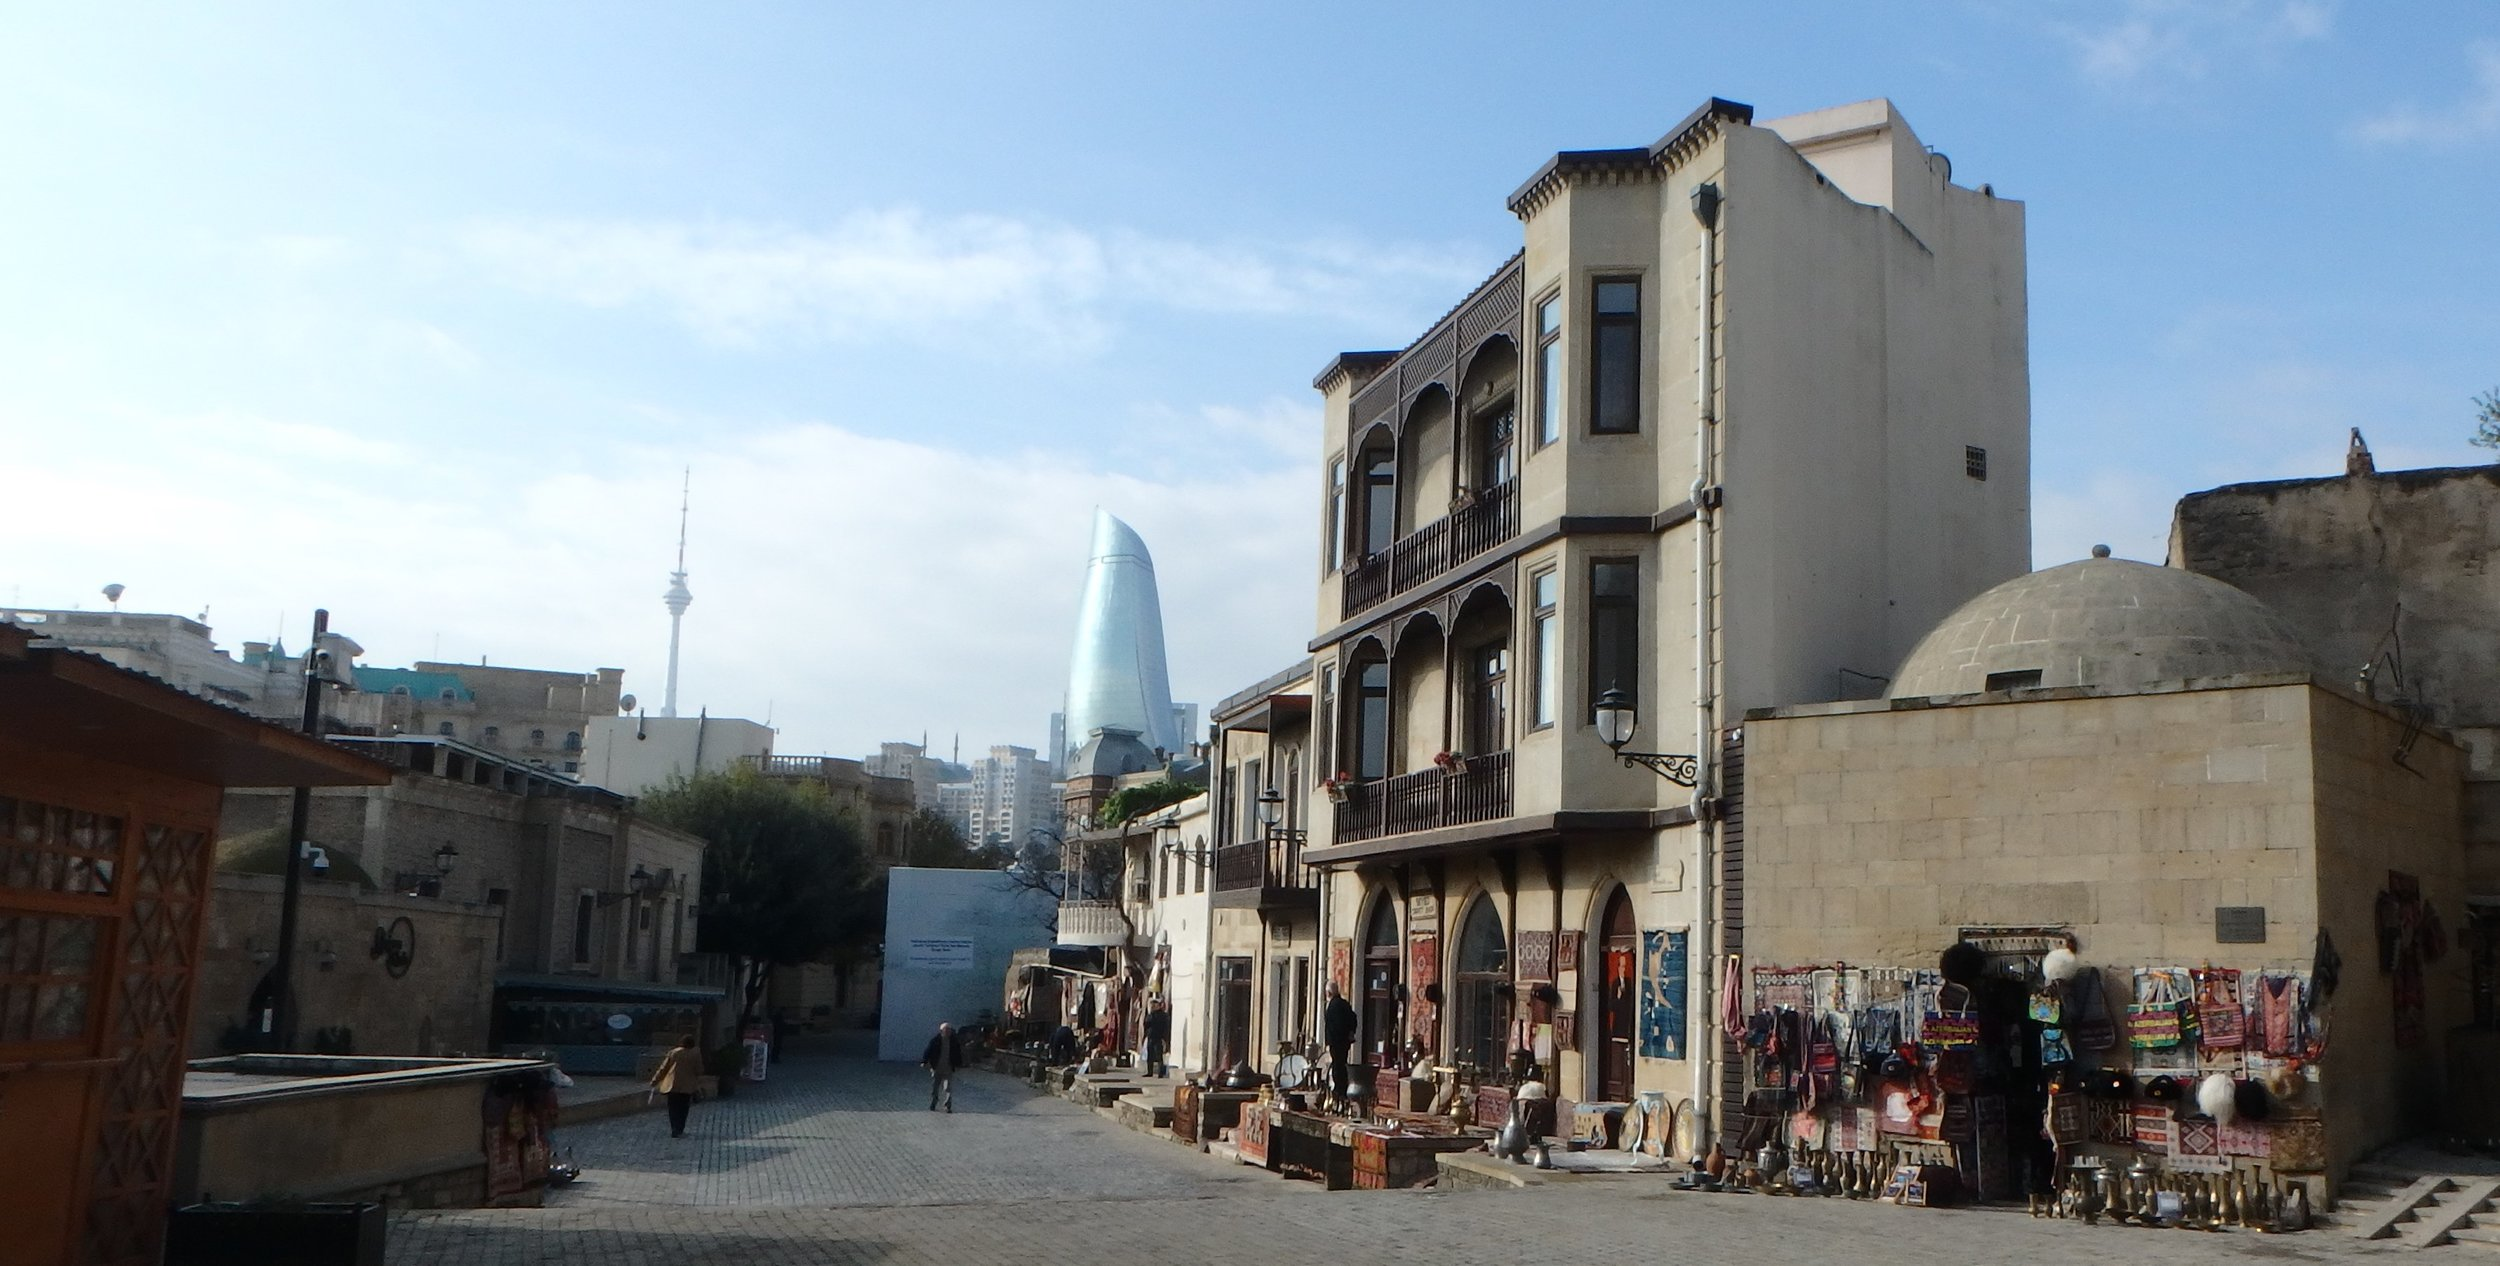 We'd made it to Baku, Azerbaijan - the city with an identity crisis - and the city where I'd had an identity crisis of my own and turned back from crossing the Caspian 6 years before. This time, I'd done it, and couldn't have been happier.